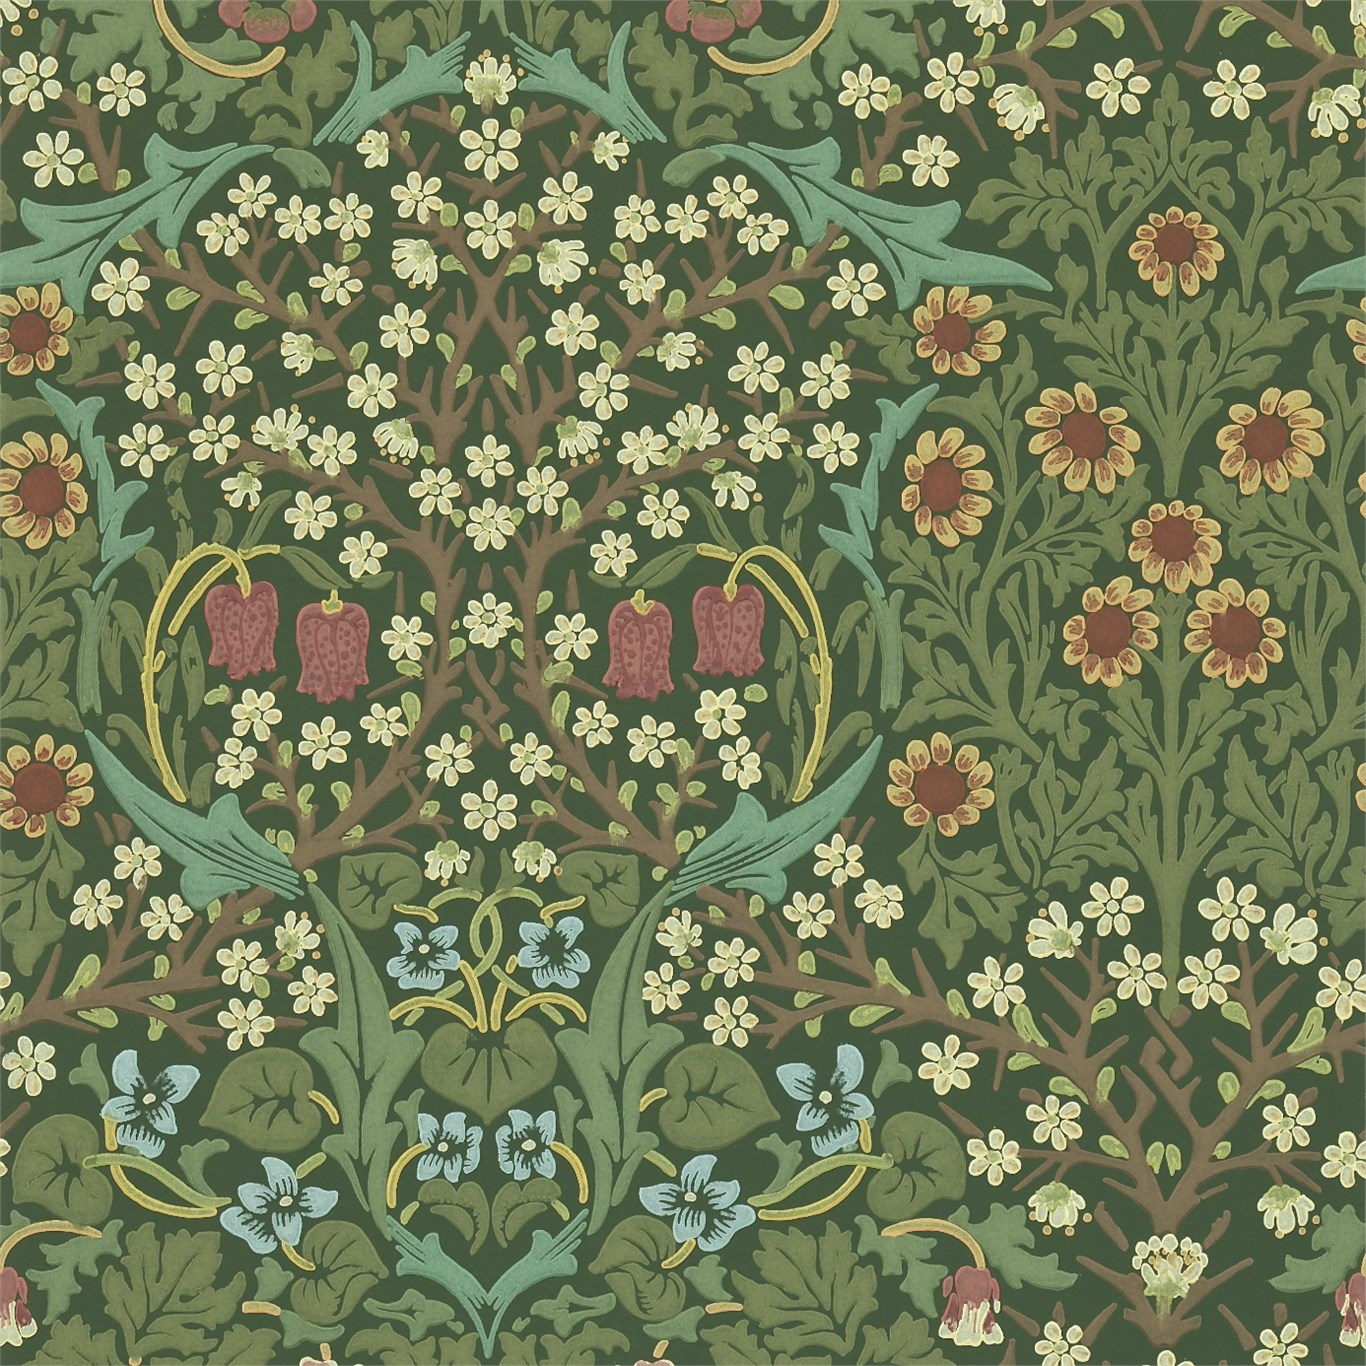 Free Download The Original Morris Co Arts And Crafts Fabrics And Wallpaper 1366x1366 For Your Desktop Mobile Tablet Explore 50 Morris And Co Wallpaper William Morris Reproduction Wallpaper William